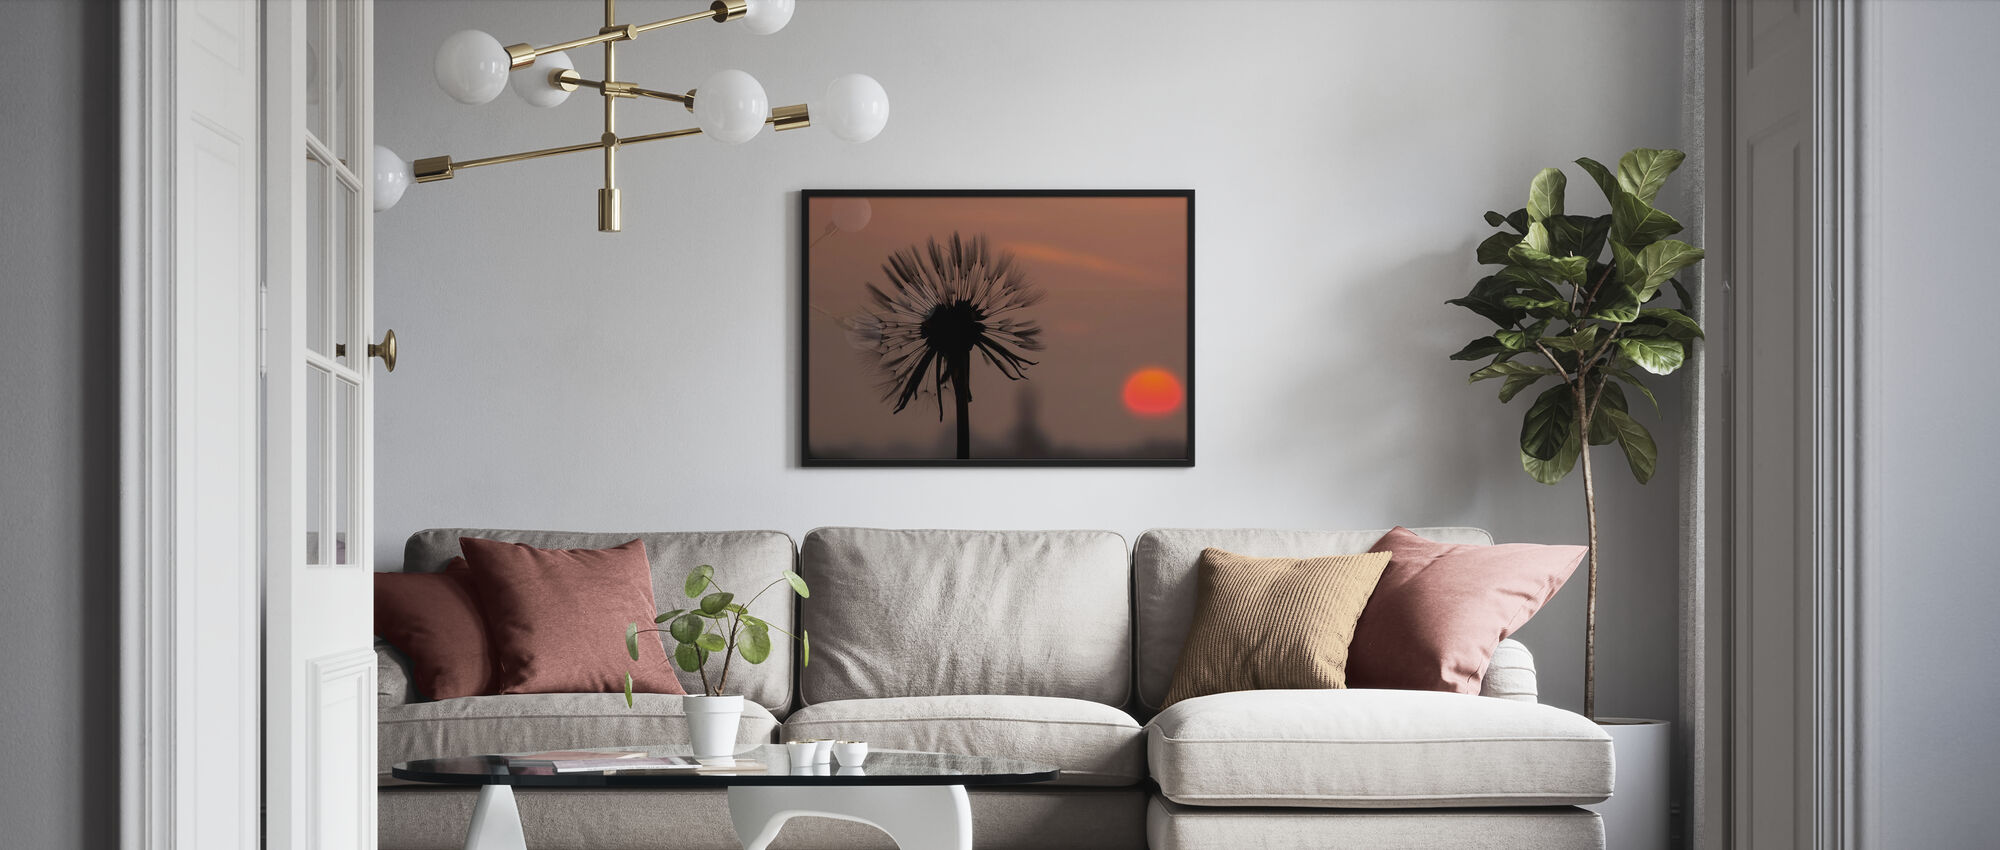 Dandelion and Silhouette Sun - Poster - Living Room